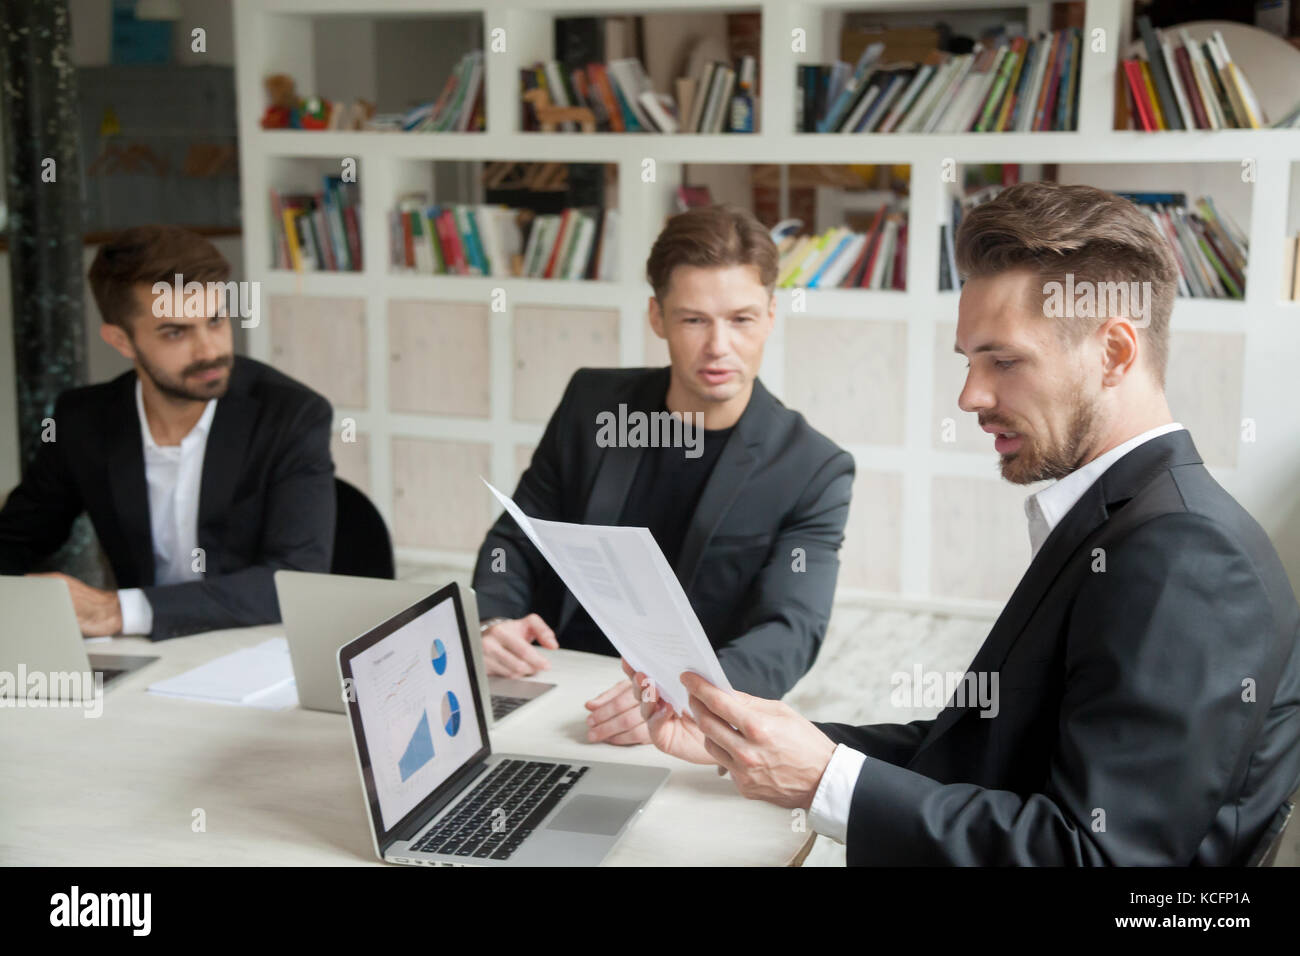 Skeptical boss looking at financial stats report presented by employee. Manager not sure if results are satisfying, - Stock Image